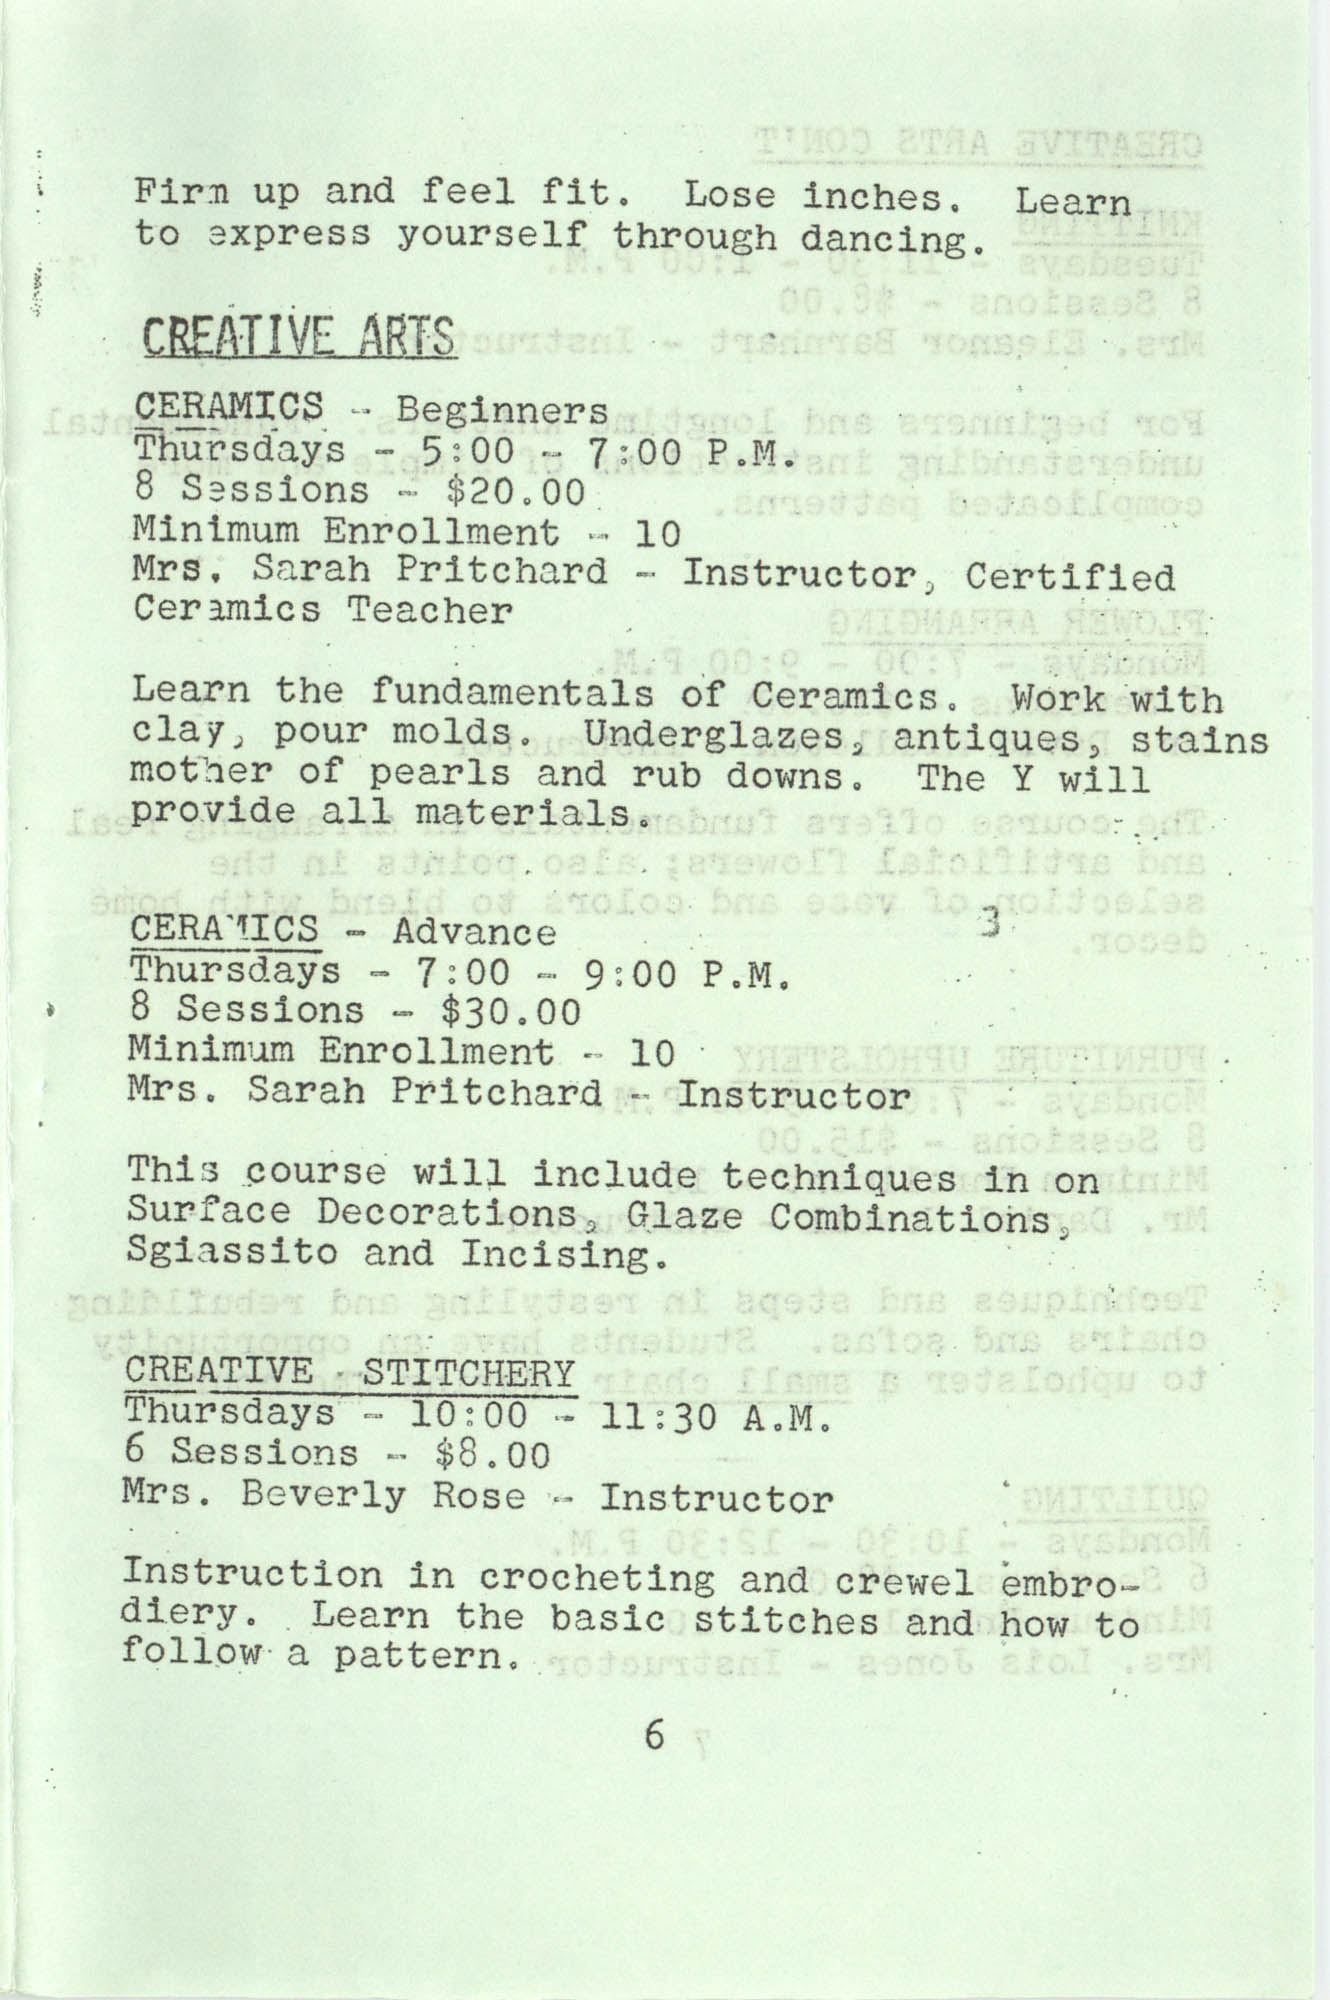 Spring 1975 Schedule, Y.W.C.A. of Greater Charleston, Page 6